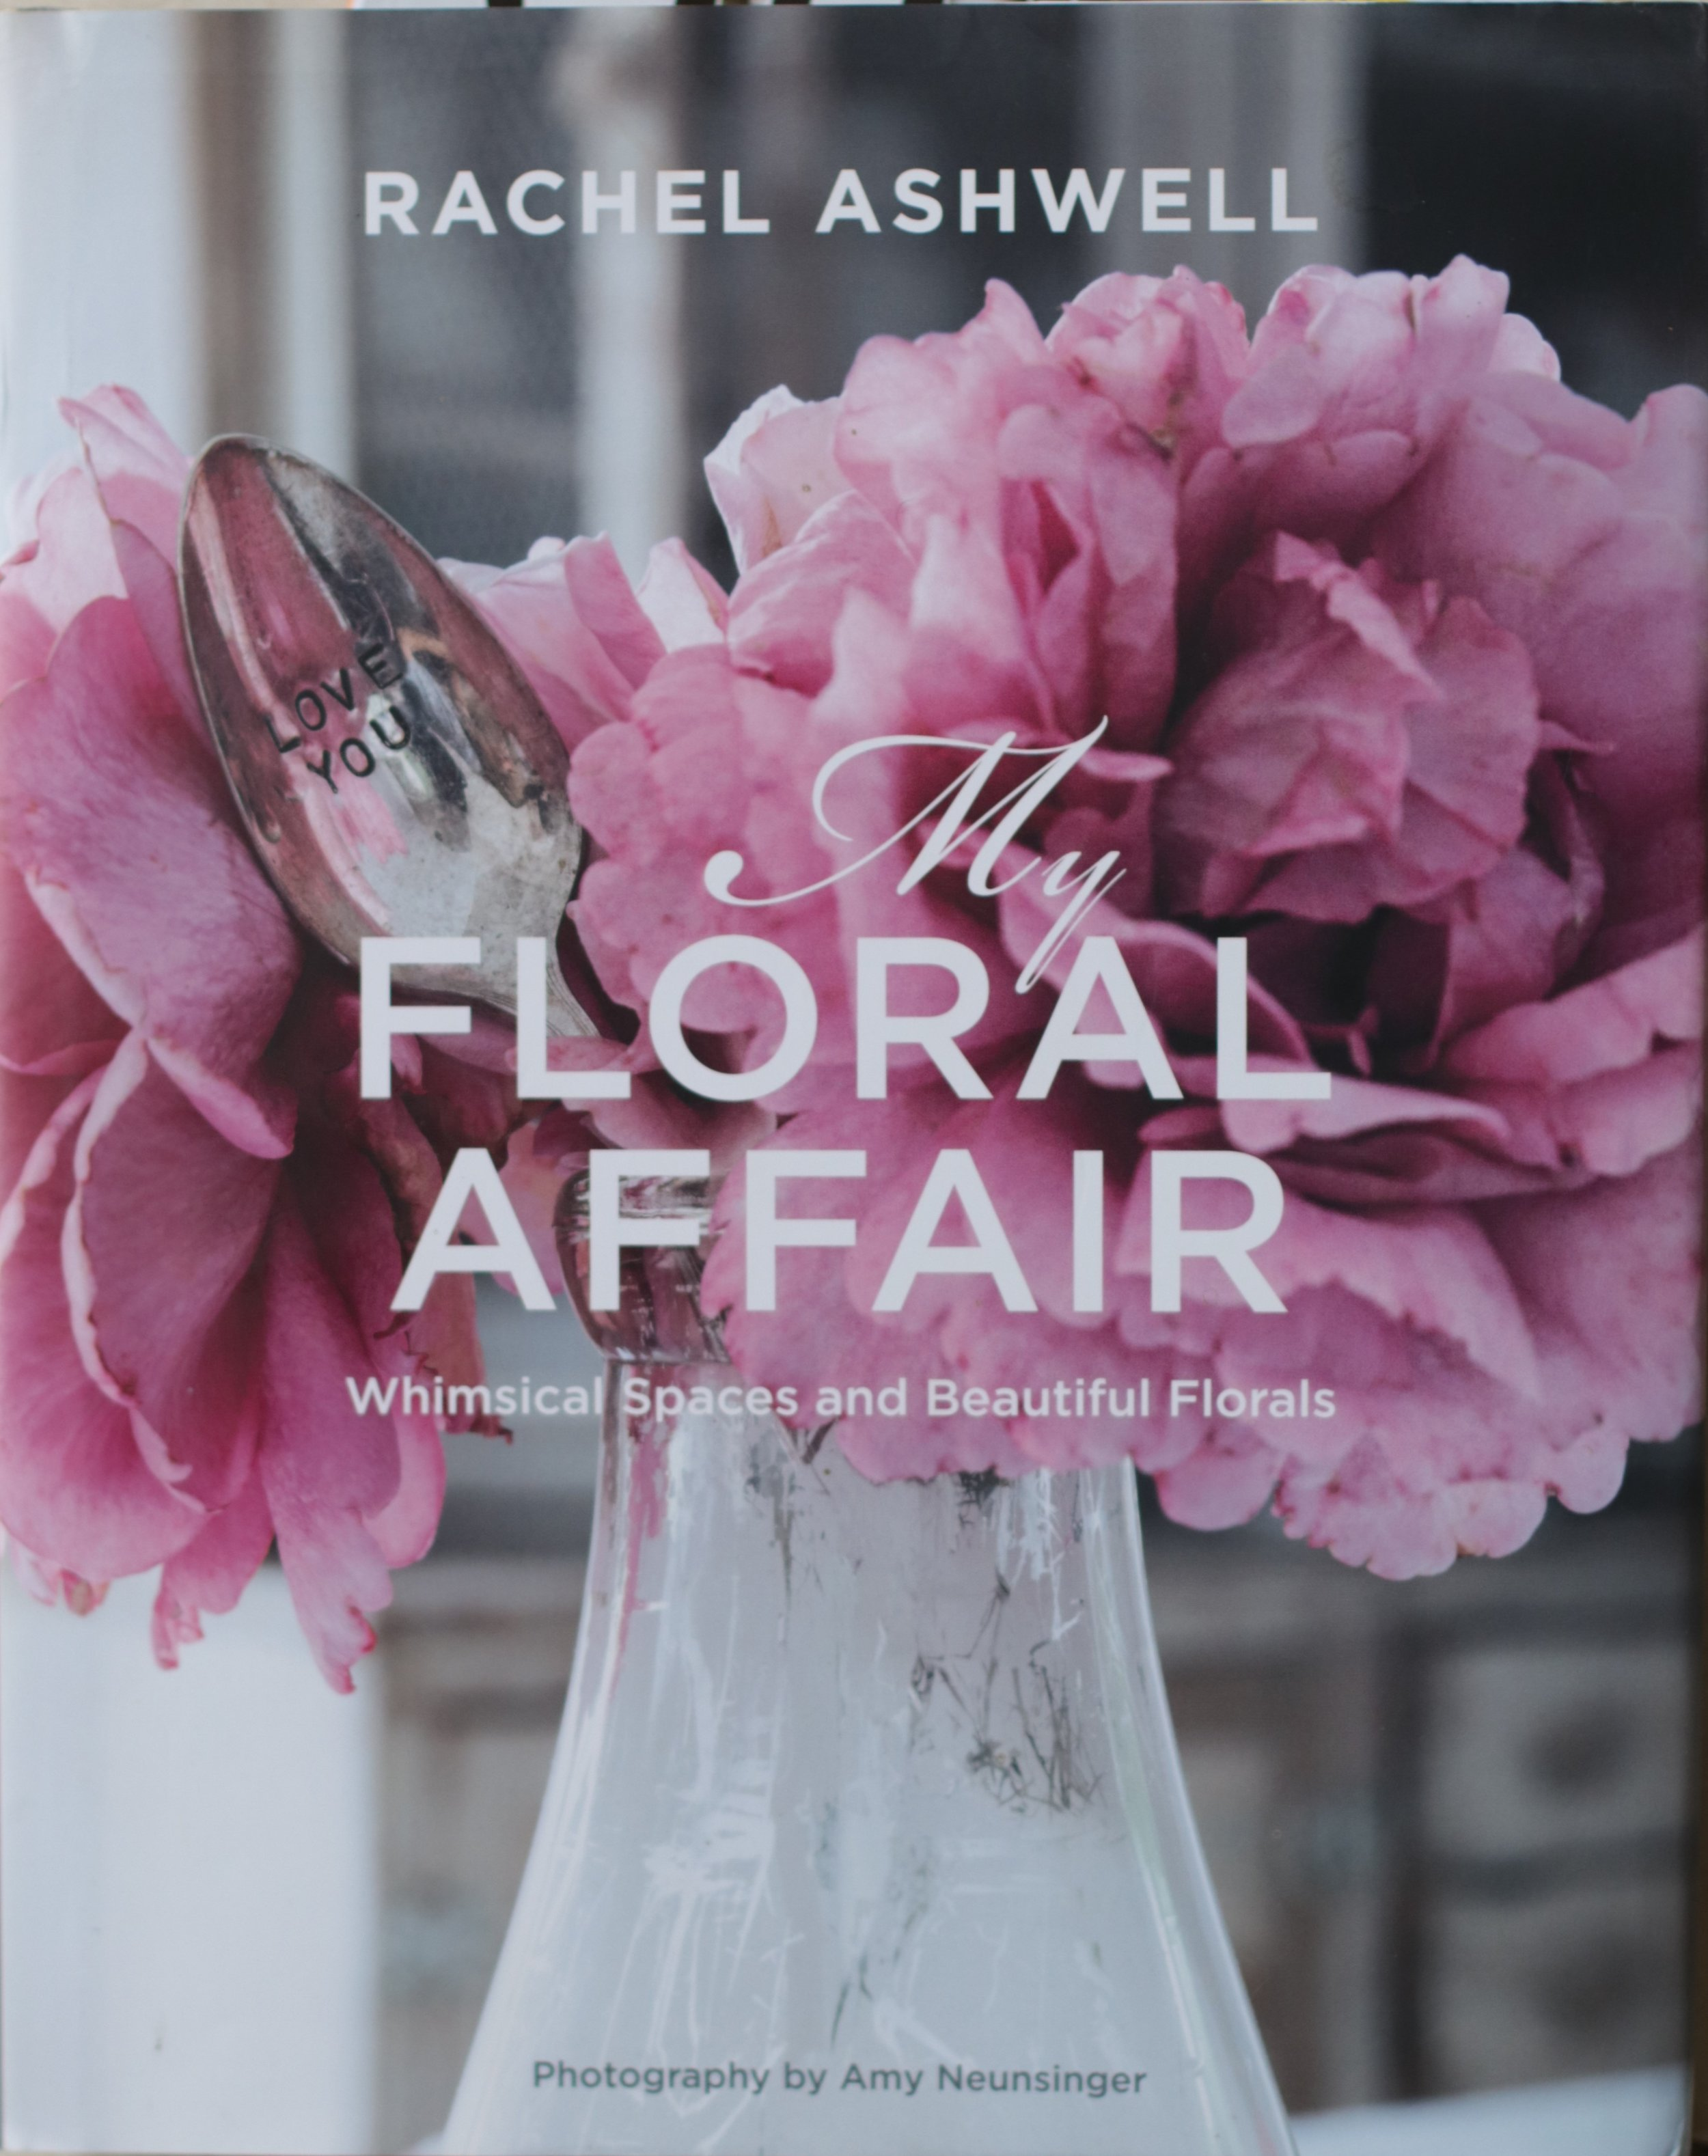 'My Floral Affair' by Rachel Ashwell. Published by Cico Books